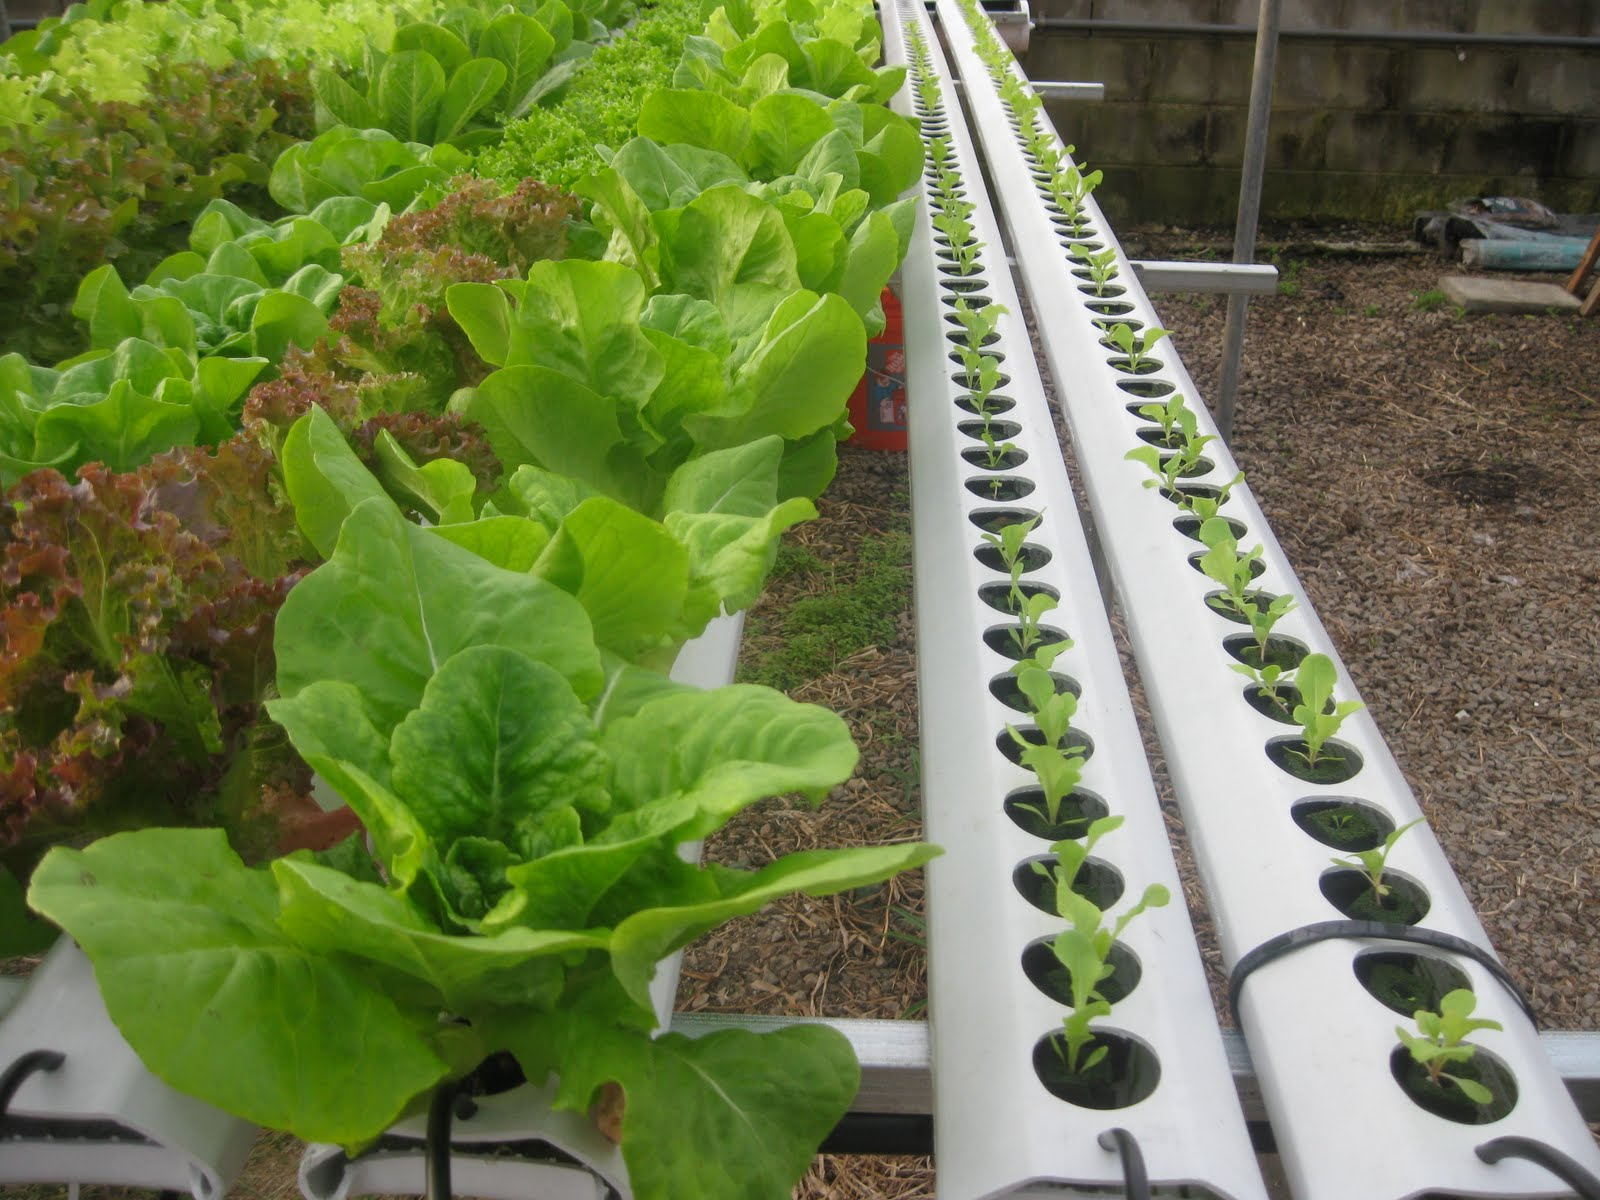 Classic hydroponic cultivation of lettuce without growing medium